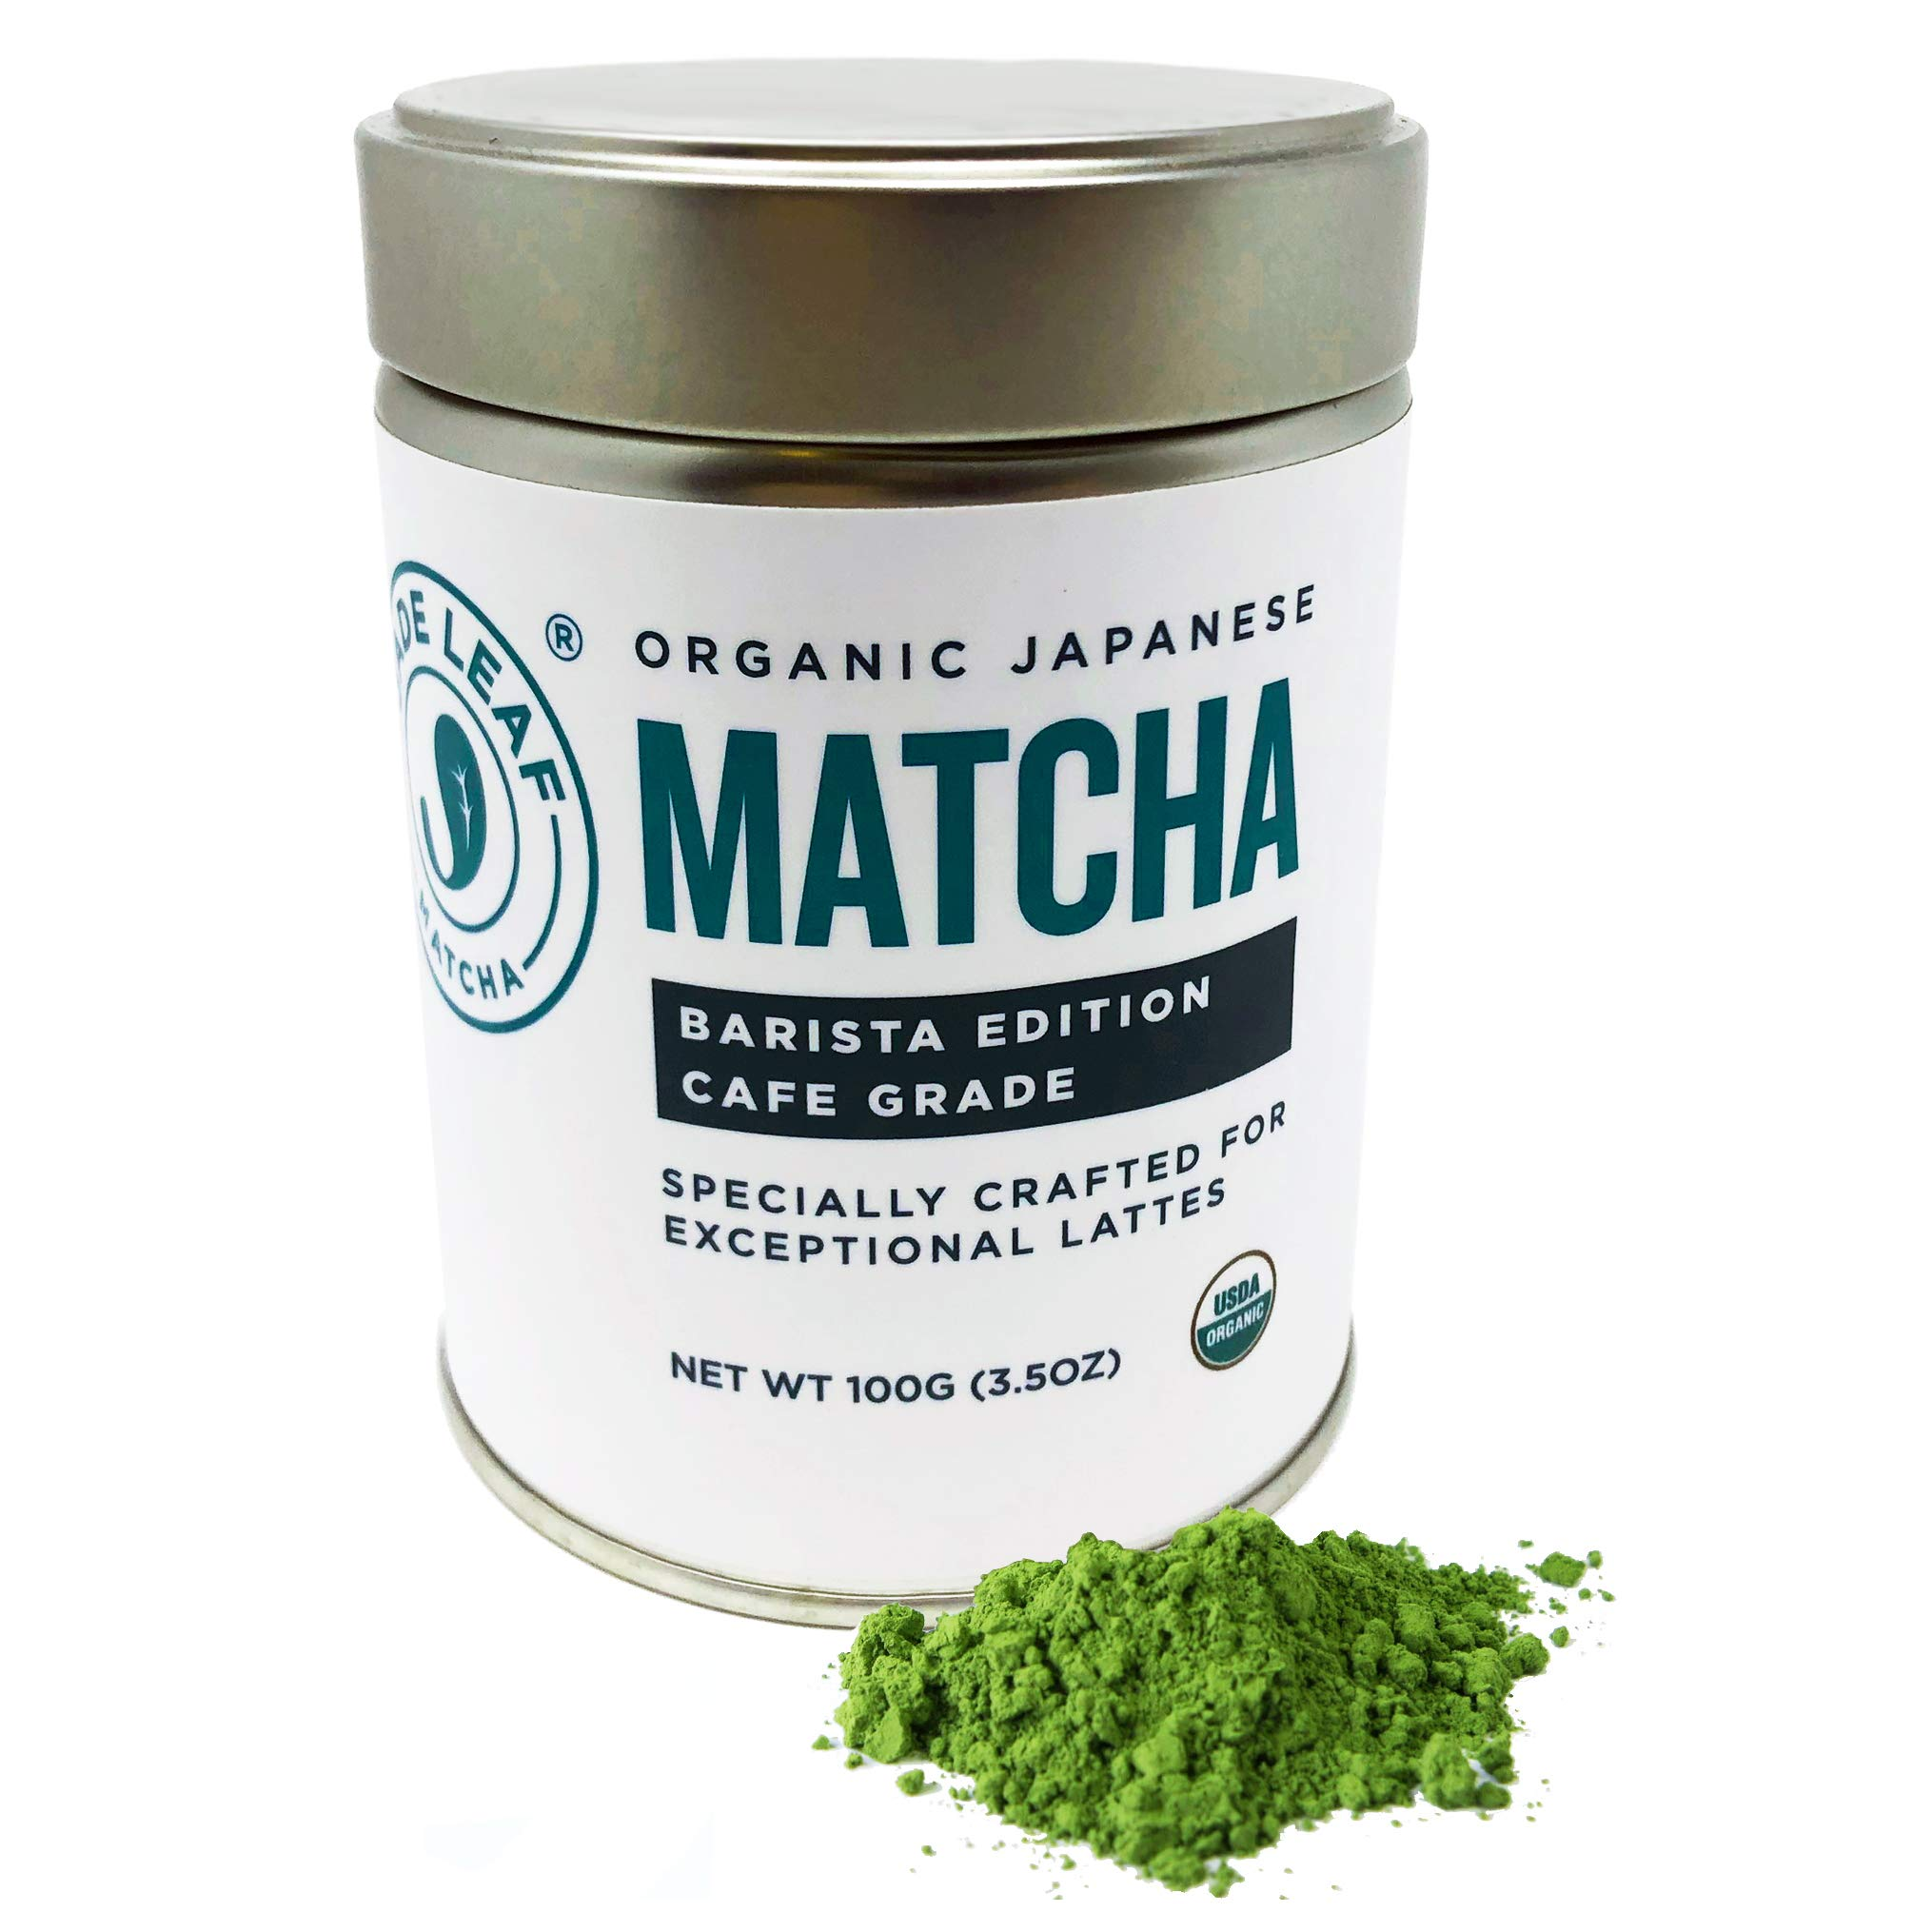 Jade Leaf Matcha Green Tea Powder - USDA Organic - Barista Edition Cafe Grade (Specially Crafted for Exceptional Lattes) - Authentic Japanese Origin [100g Tin] by Jade Leaf Matcha